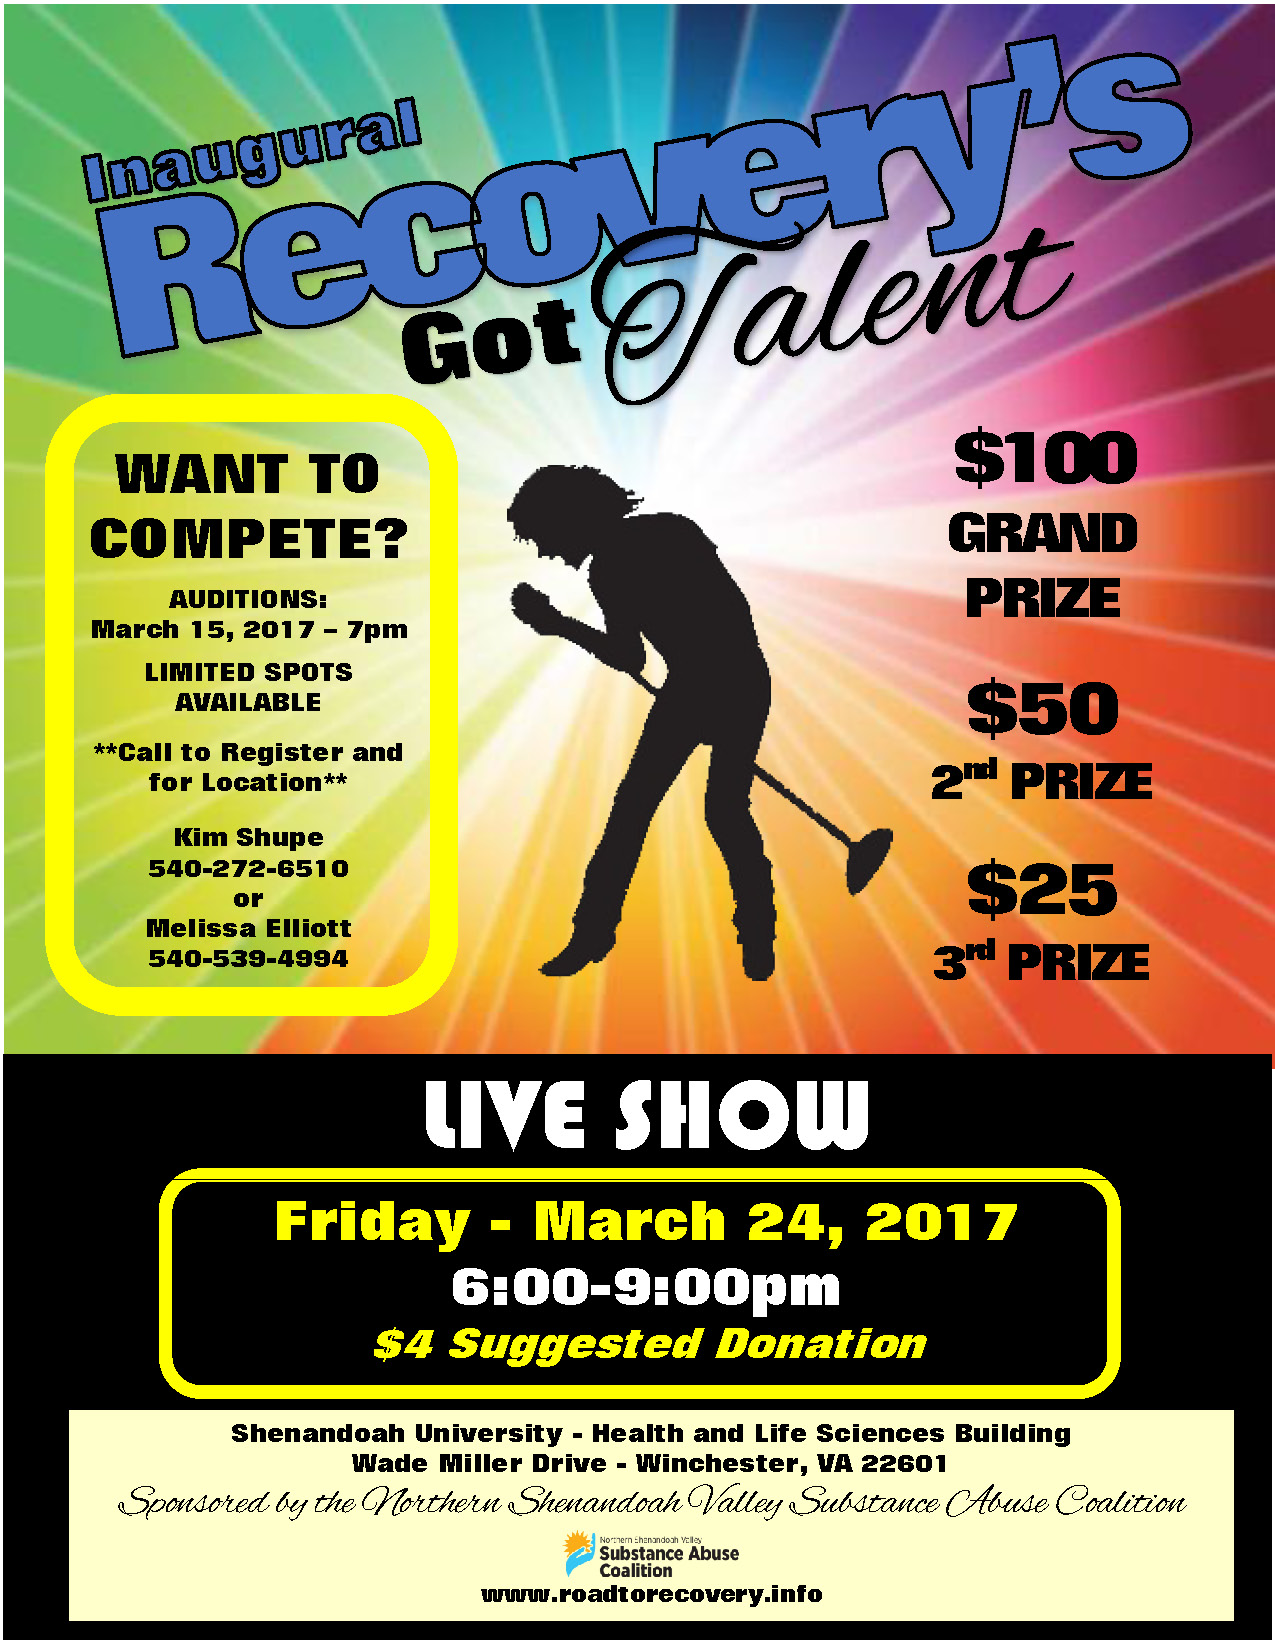 RECOVERYS GOT TALENT FLYER edited